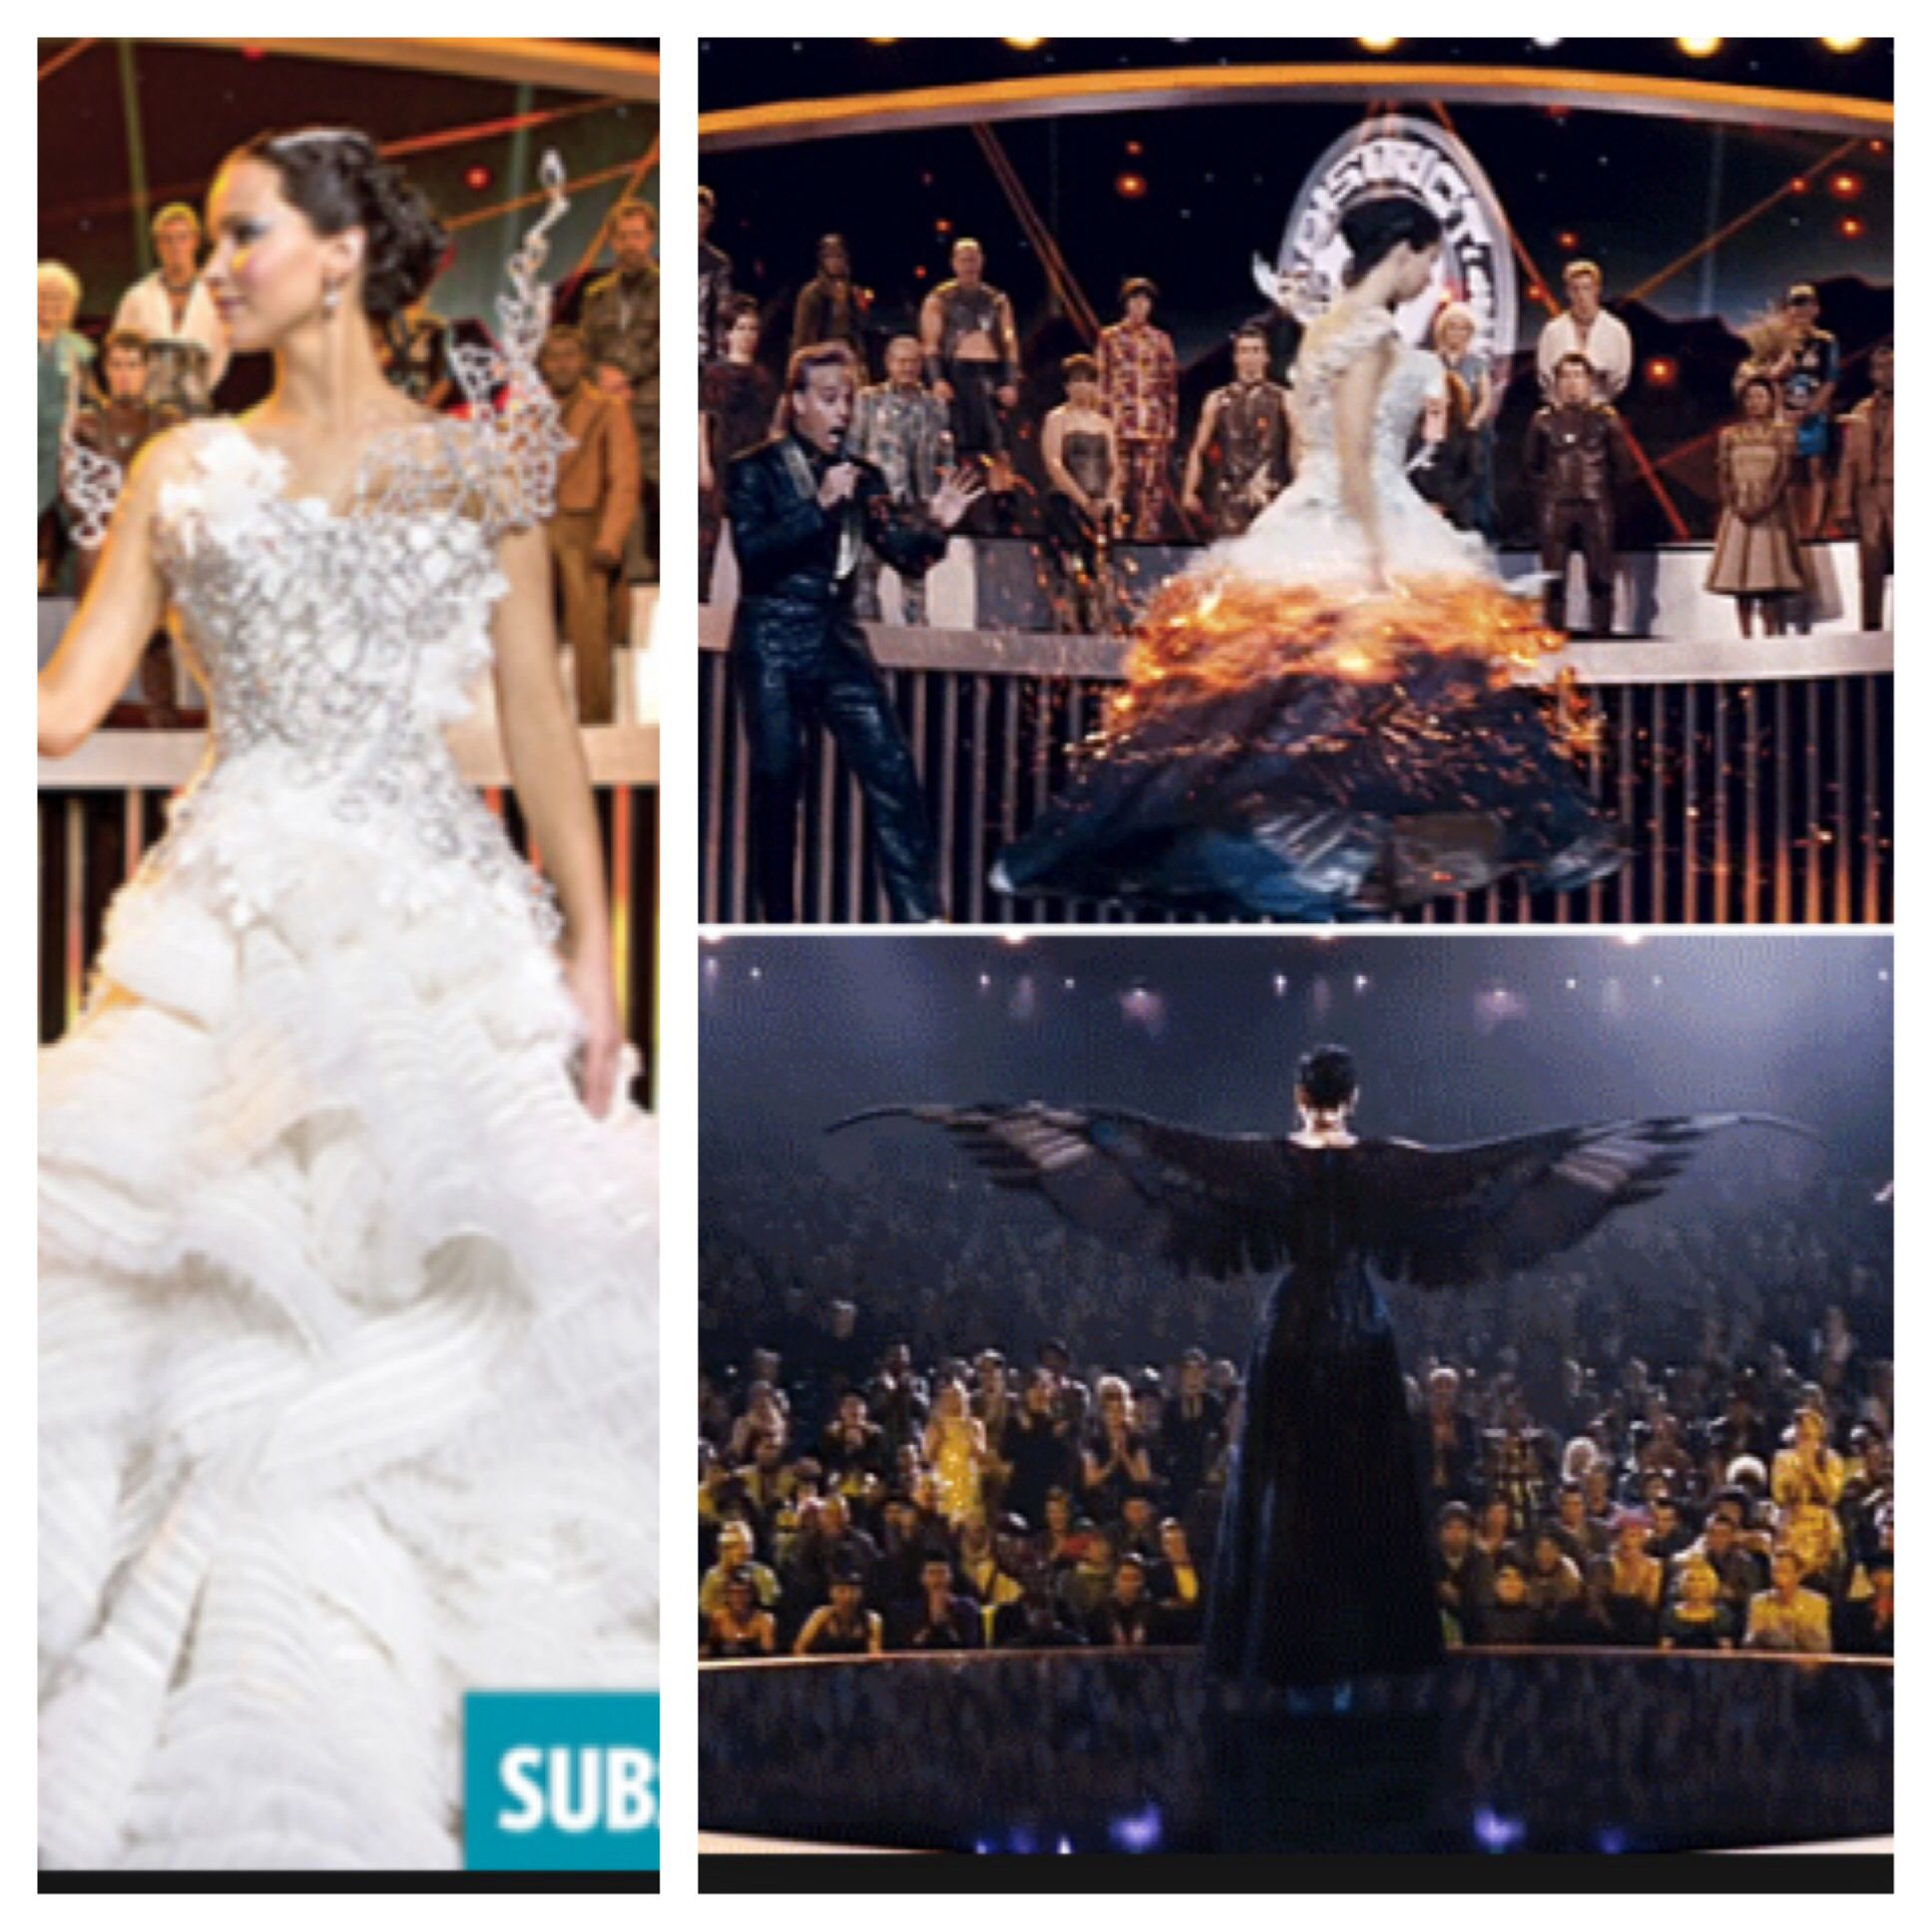 Katniss Everdeen Hochzeitskleid Catching Fire Katniss Mocking Jay Wedding Dress Beautiful